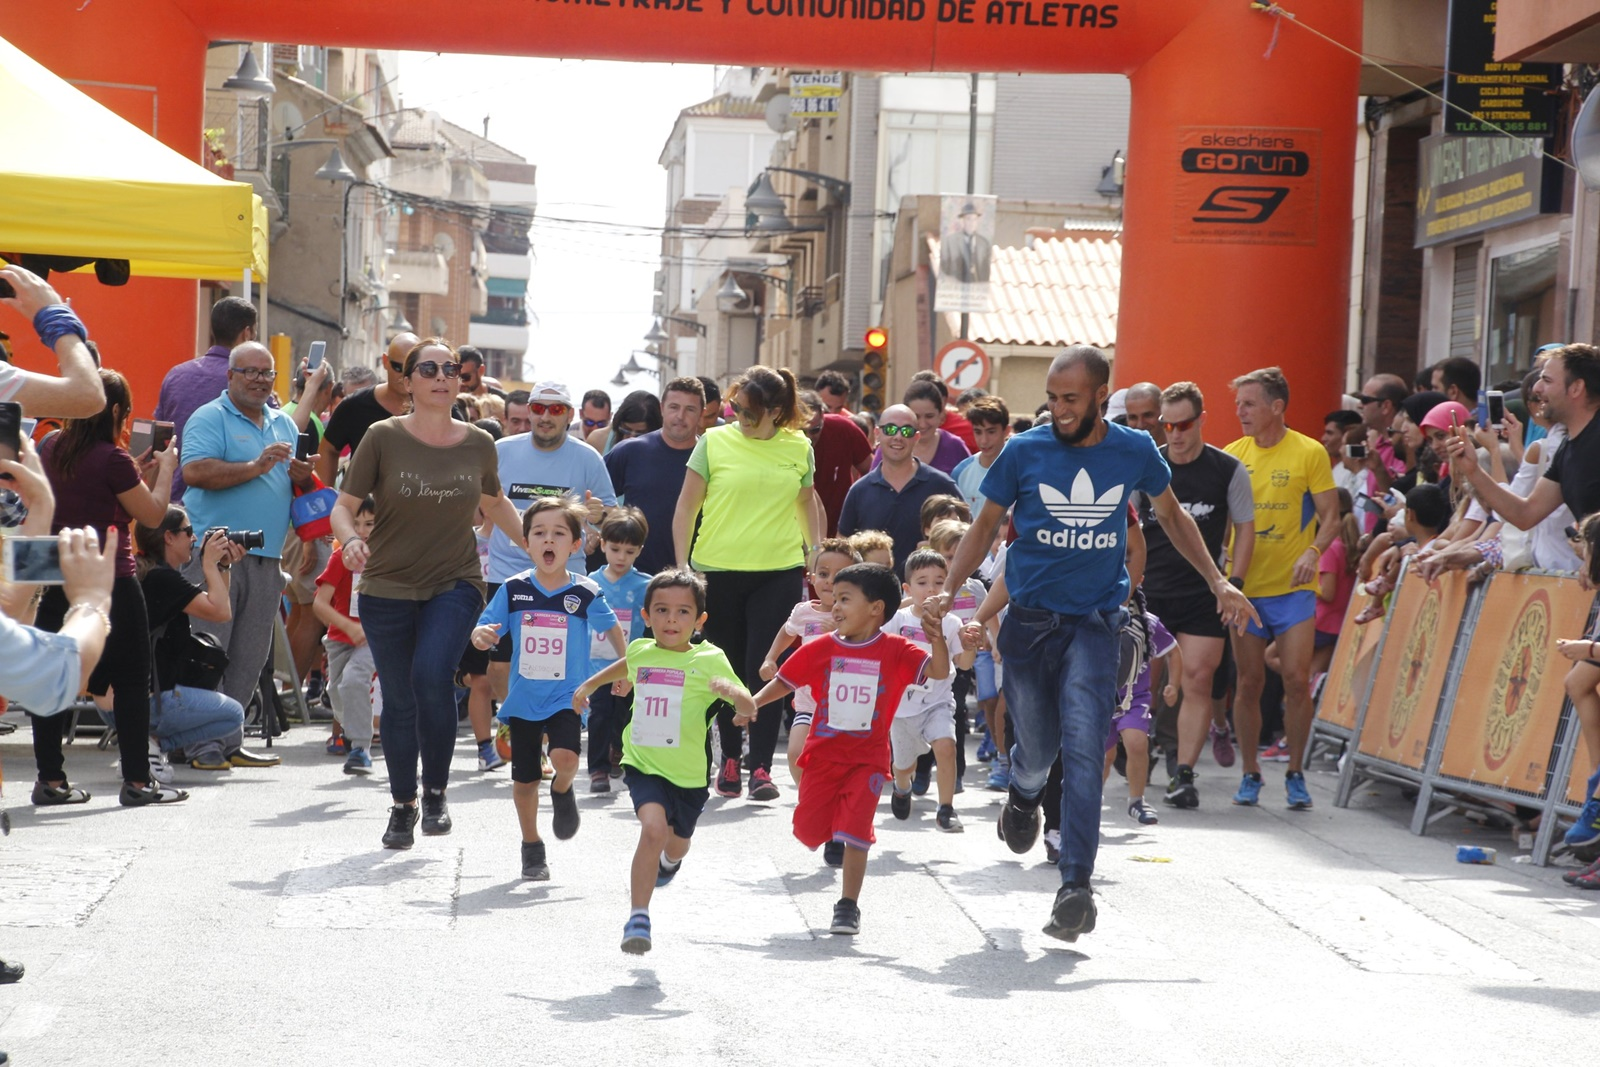 V Carrera Popular 11 - casichupetes M